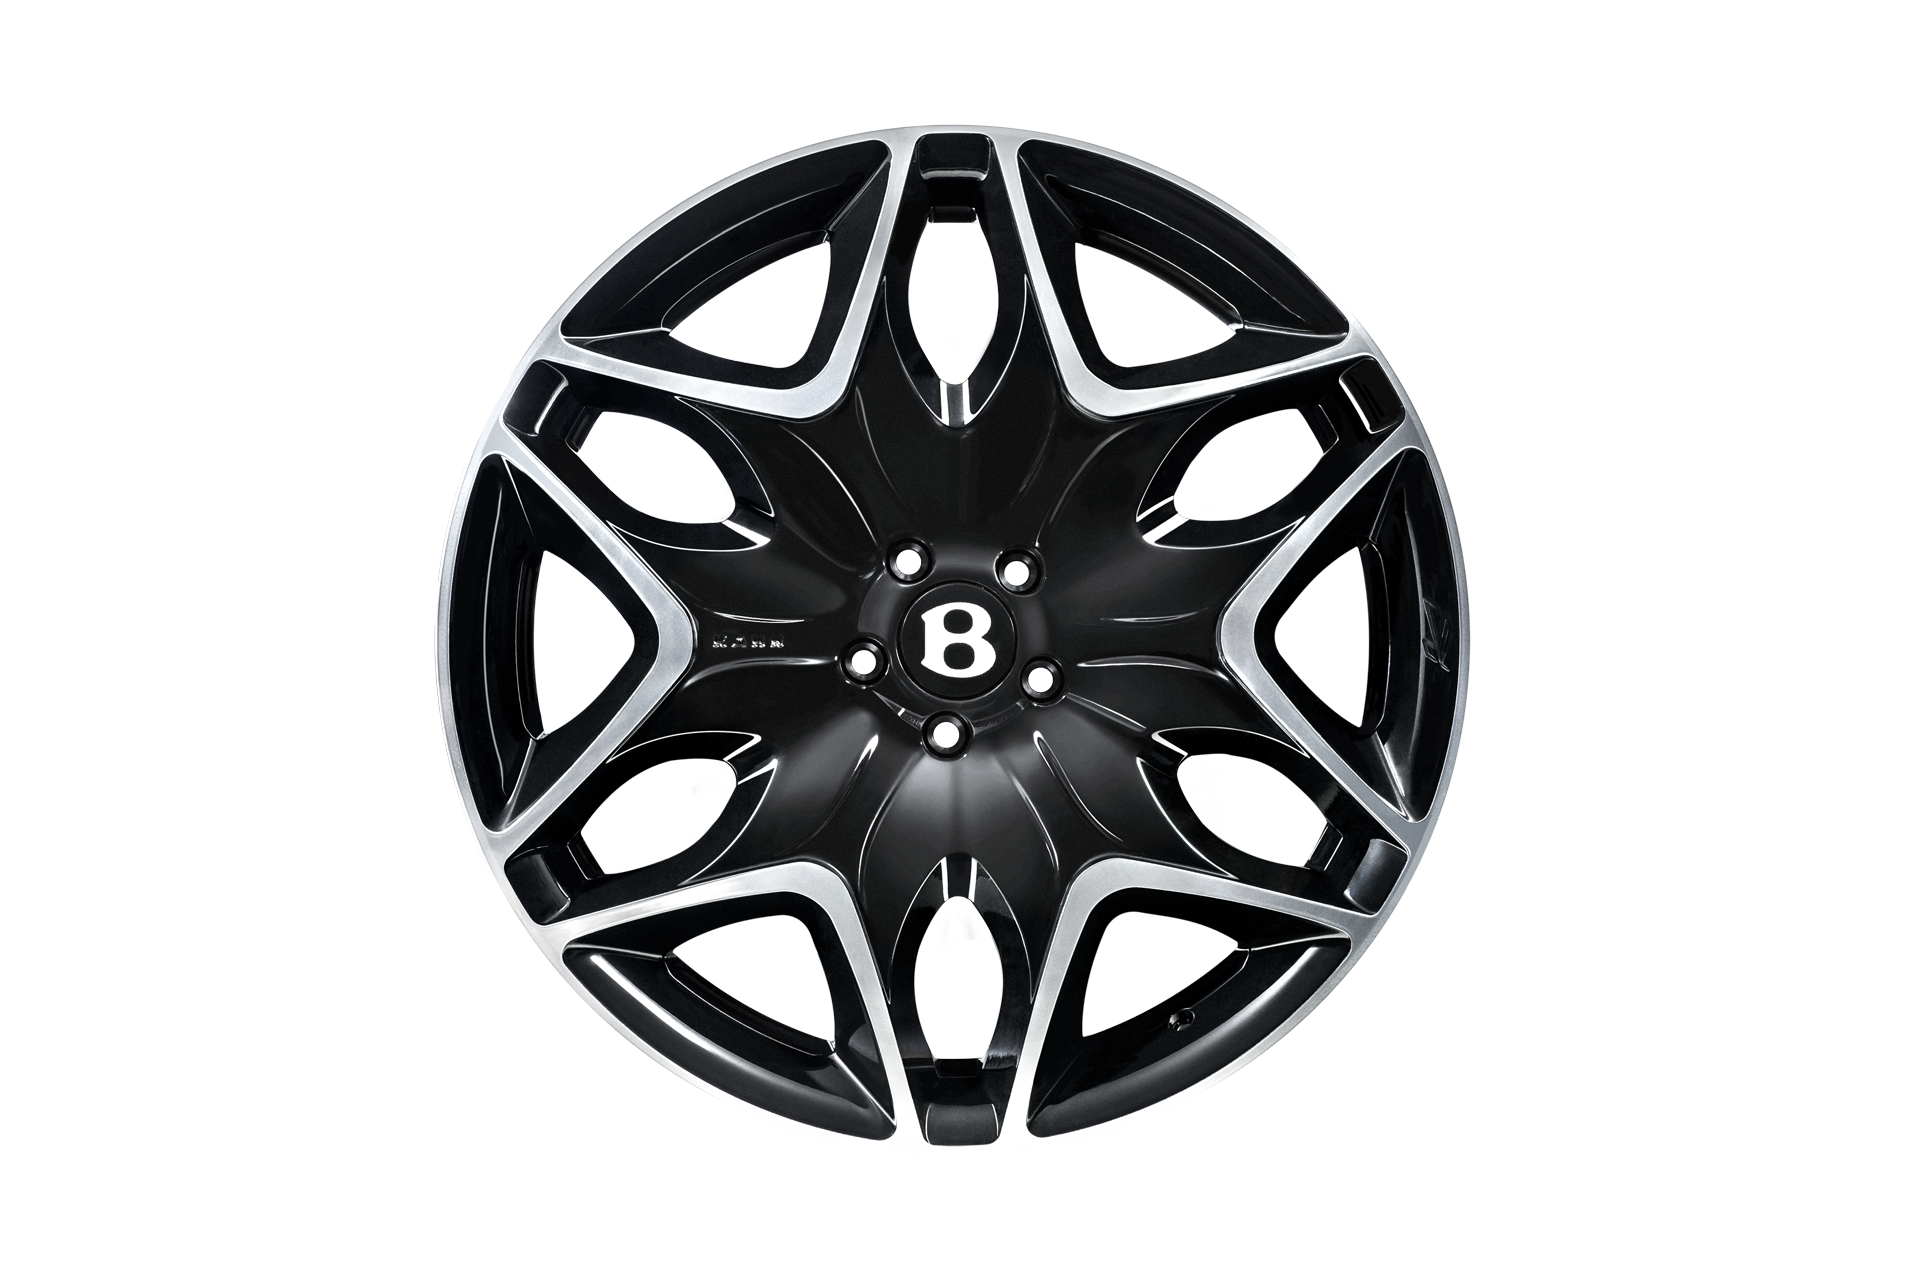 Bentley Mulsanne (2010-2016) Split 6 Light Alloy Wheels Image 4741